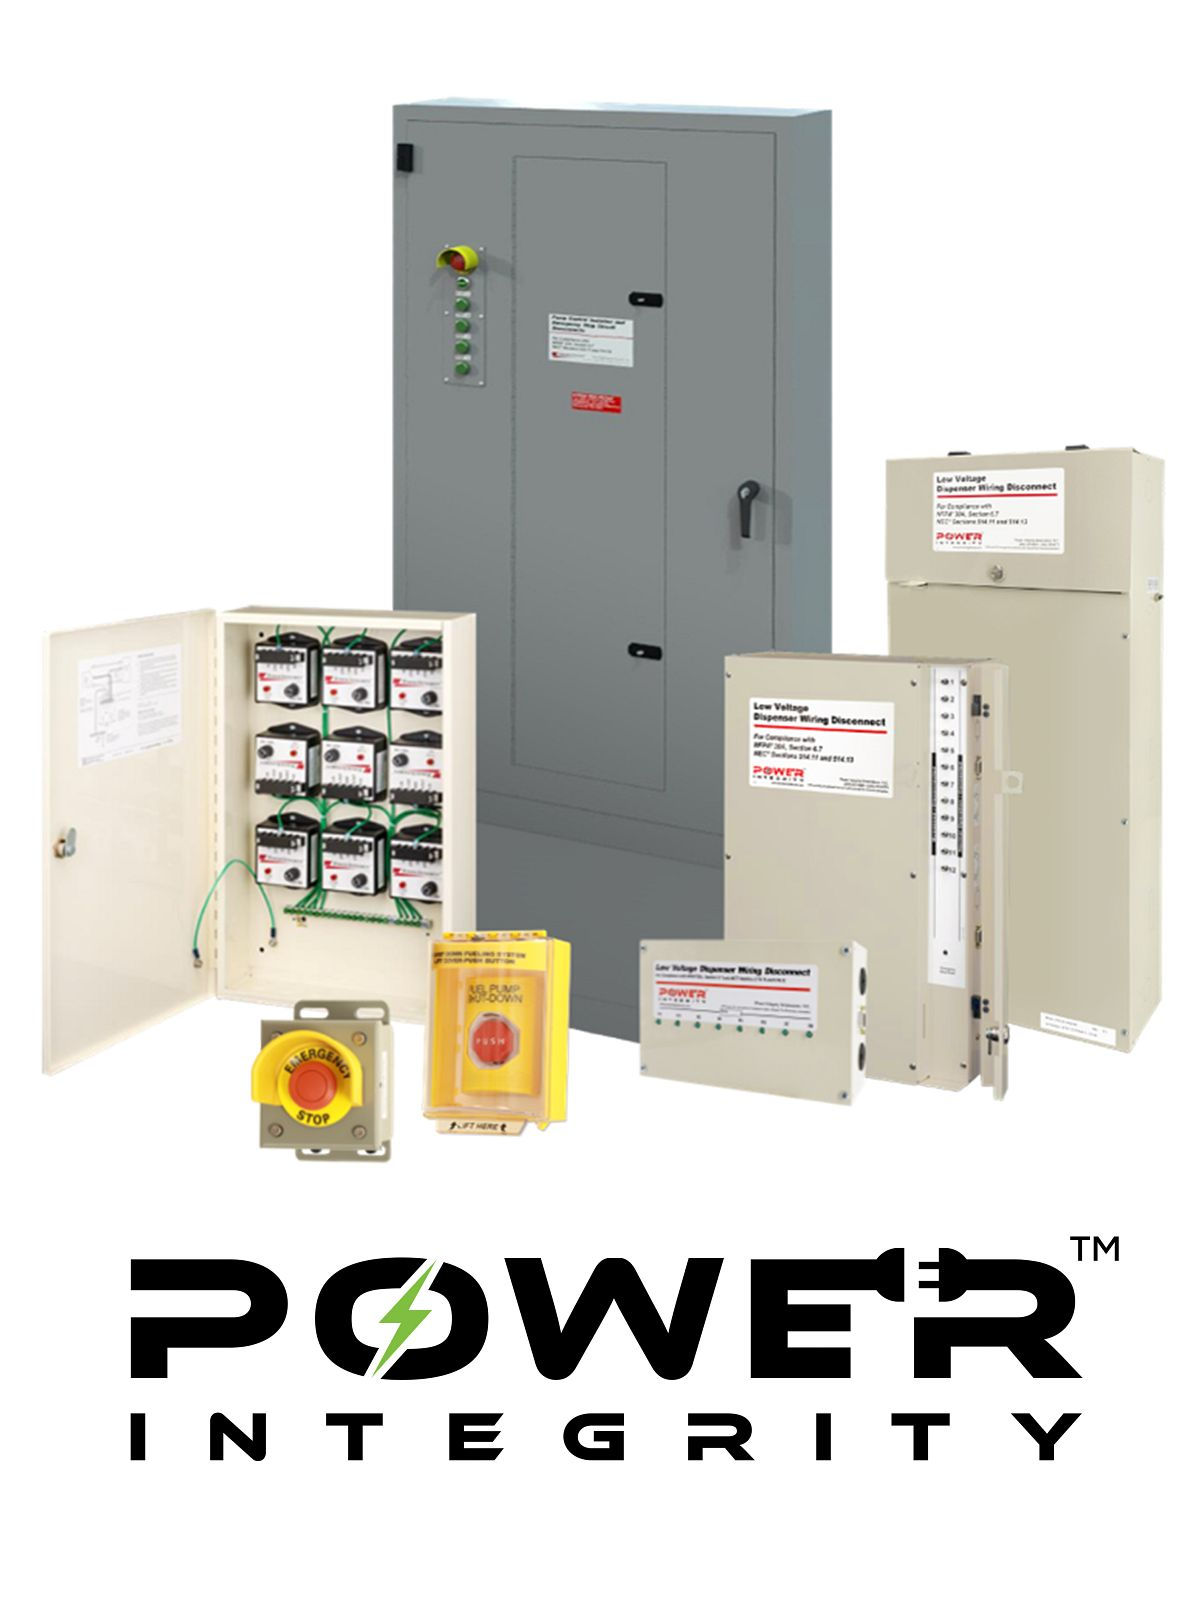 Integrated-Electrical-Controls_News.psd